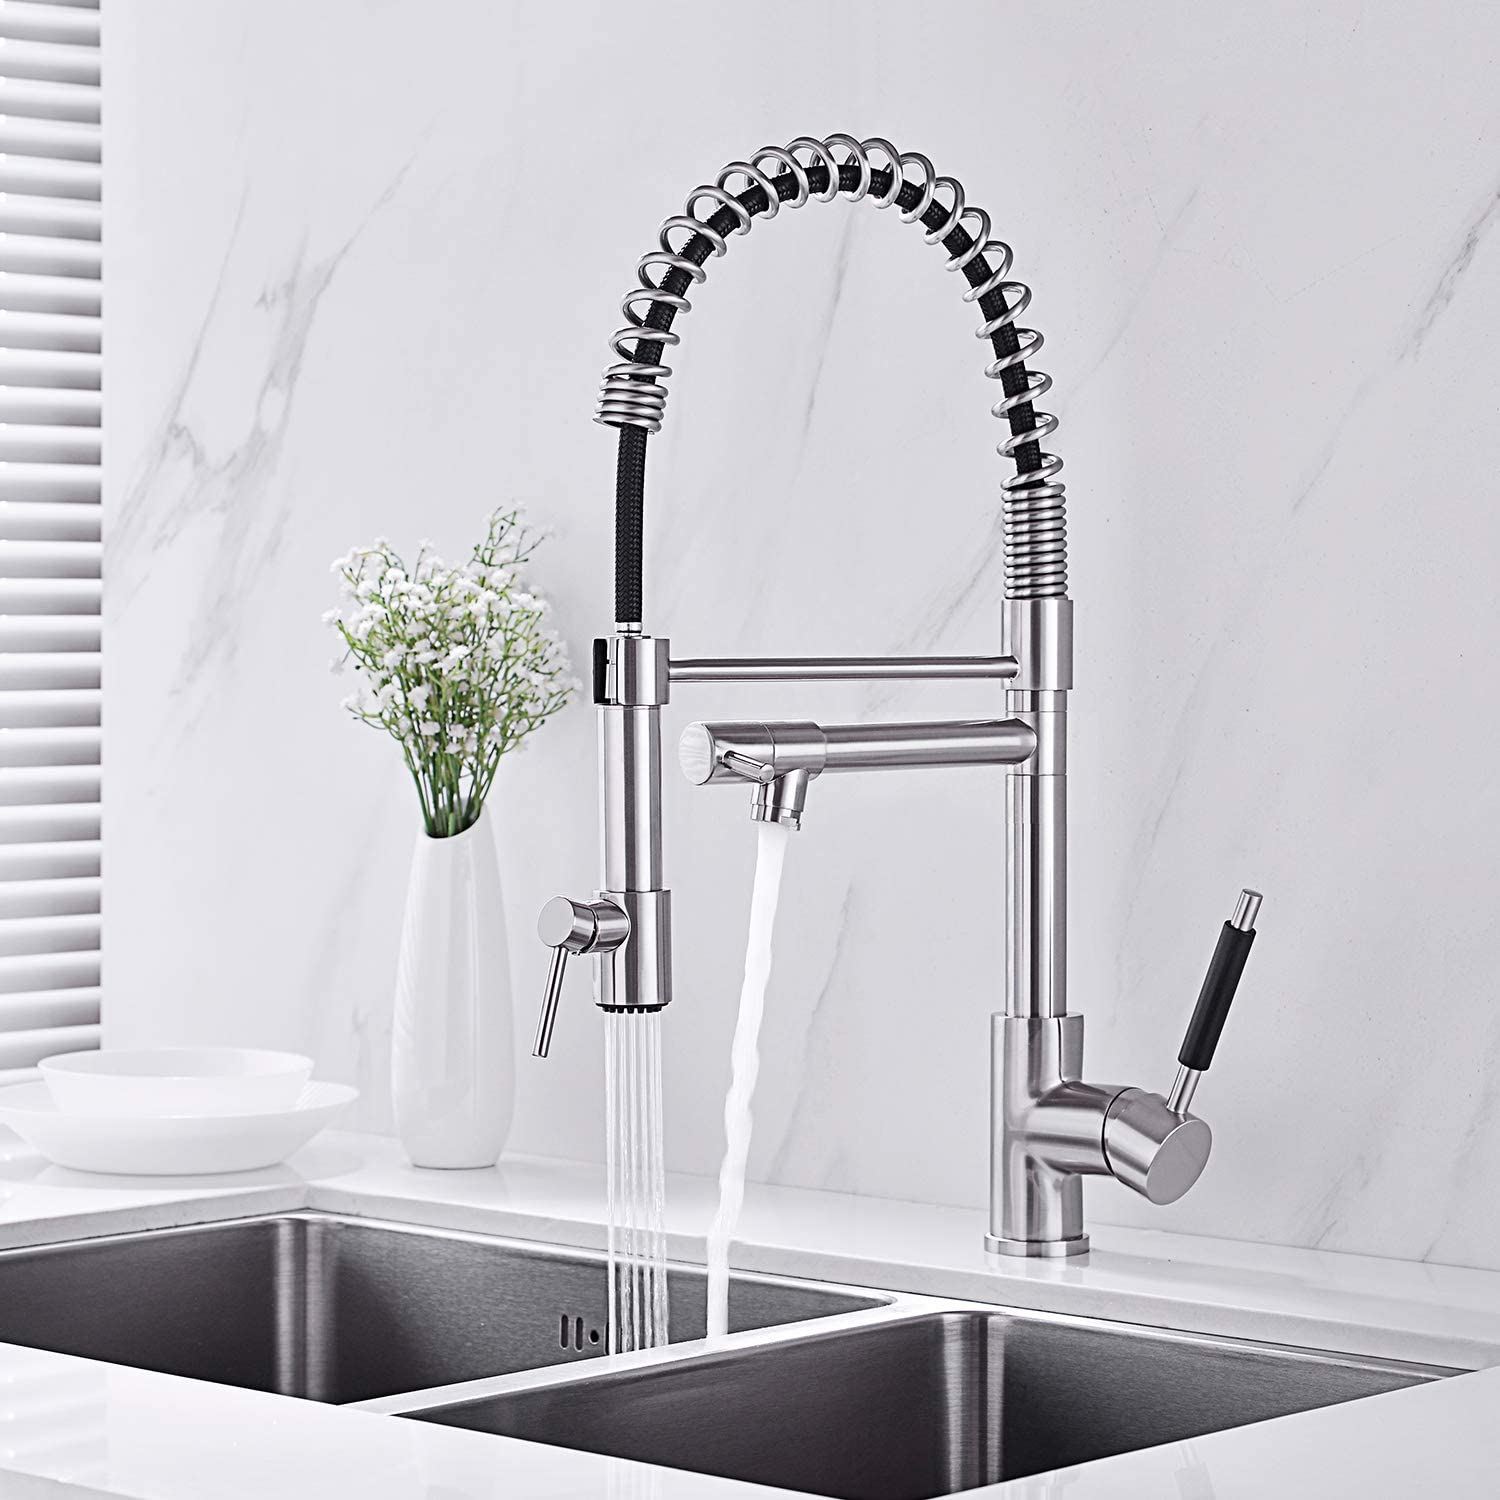 Free Amazon Promo Code 2020 for Kitchen Faucet